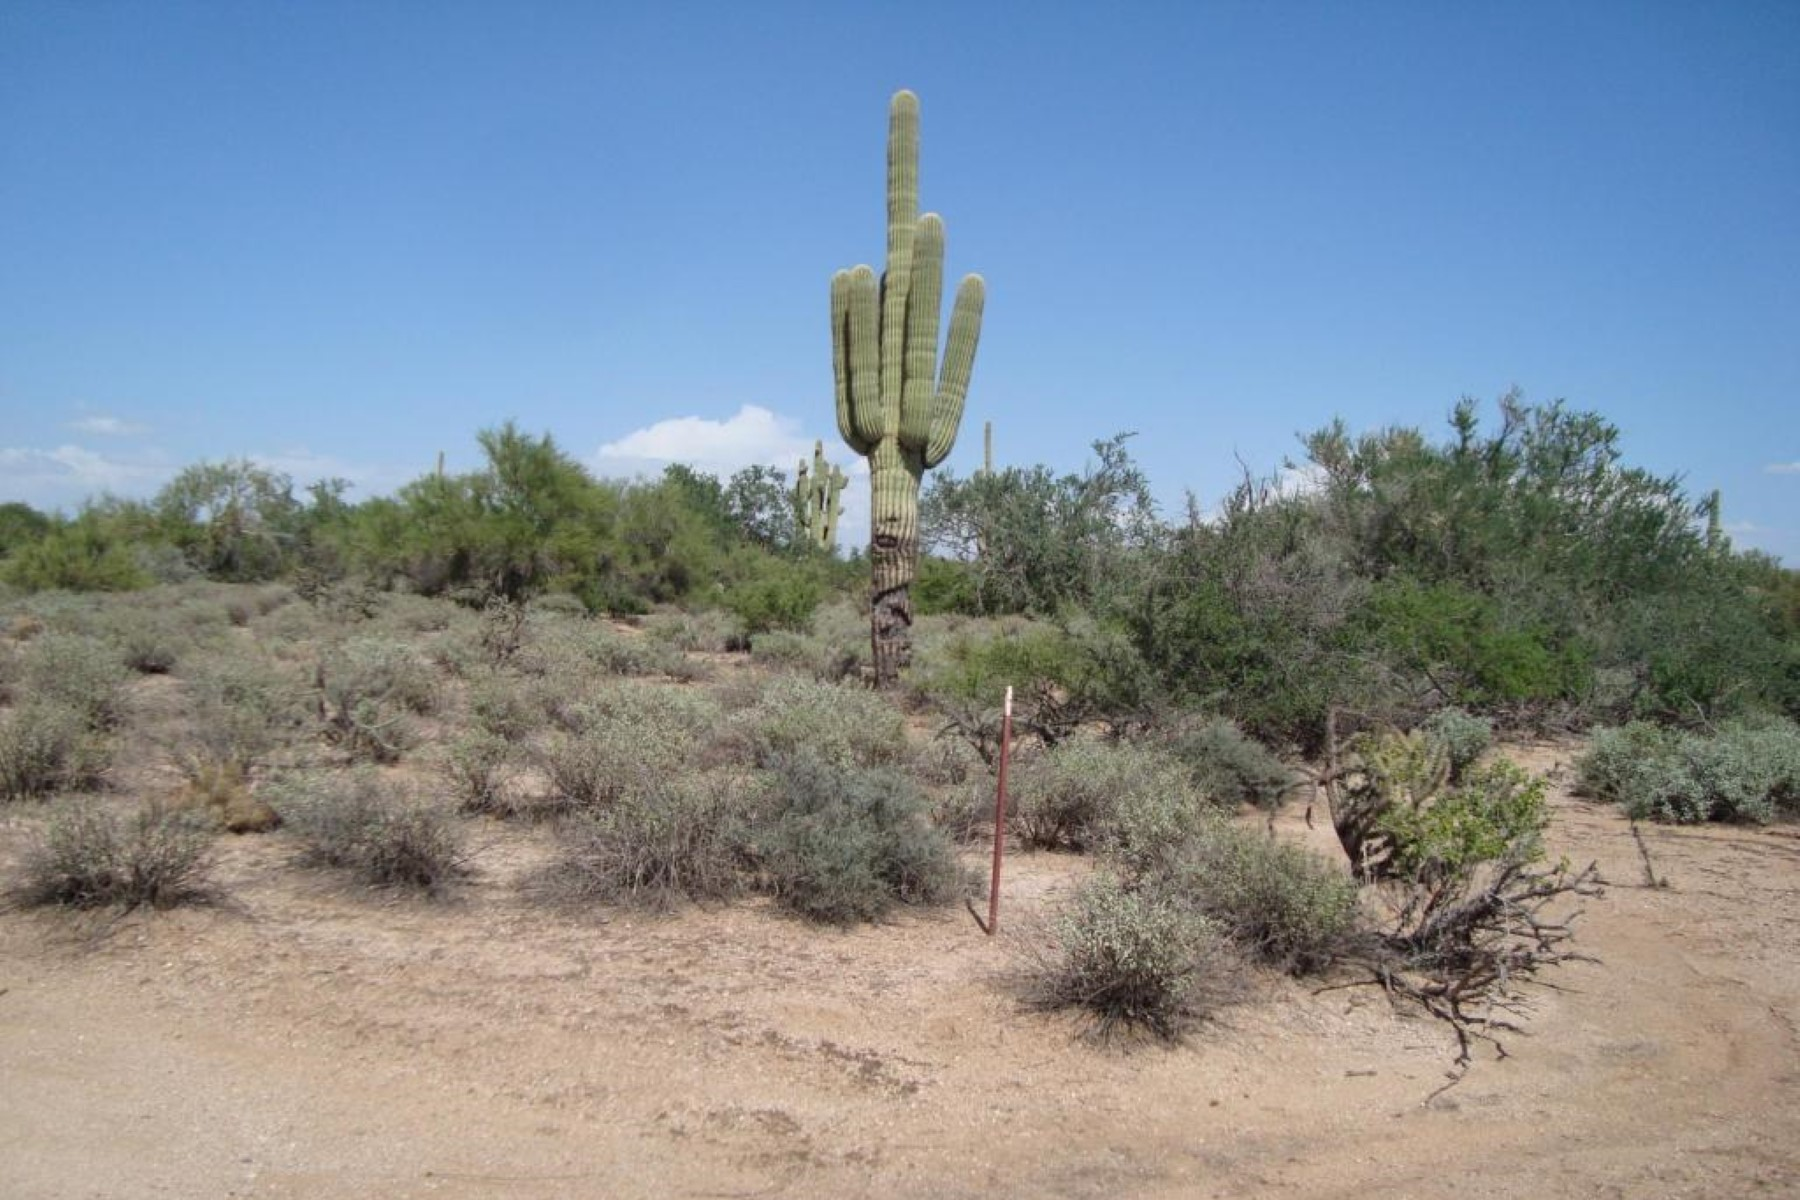 Maison unifamiliale pour l Vente à A perfect 2.5 acre parcel ready for you to build that dream home. 27XXX N 77th ST 2.5 AC Scottsdale, Arizona 85266 États-Unis